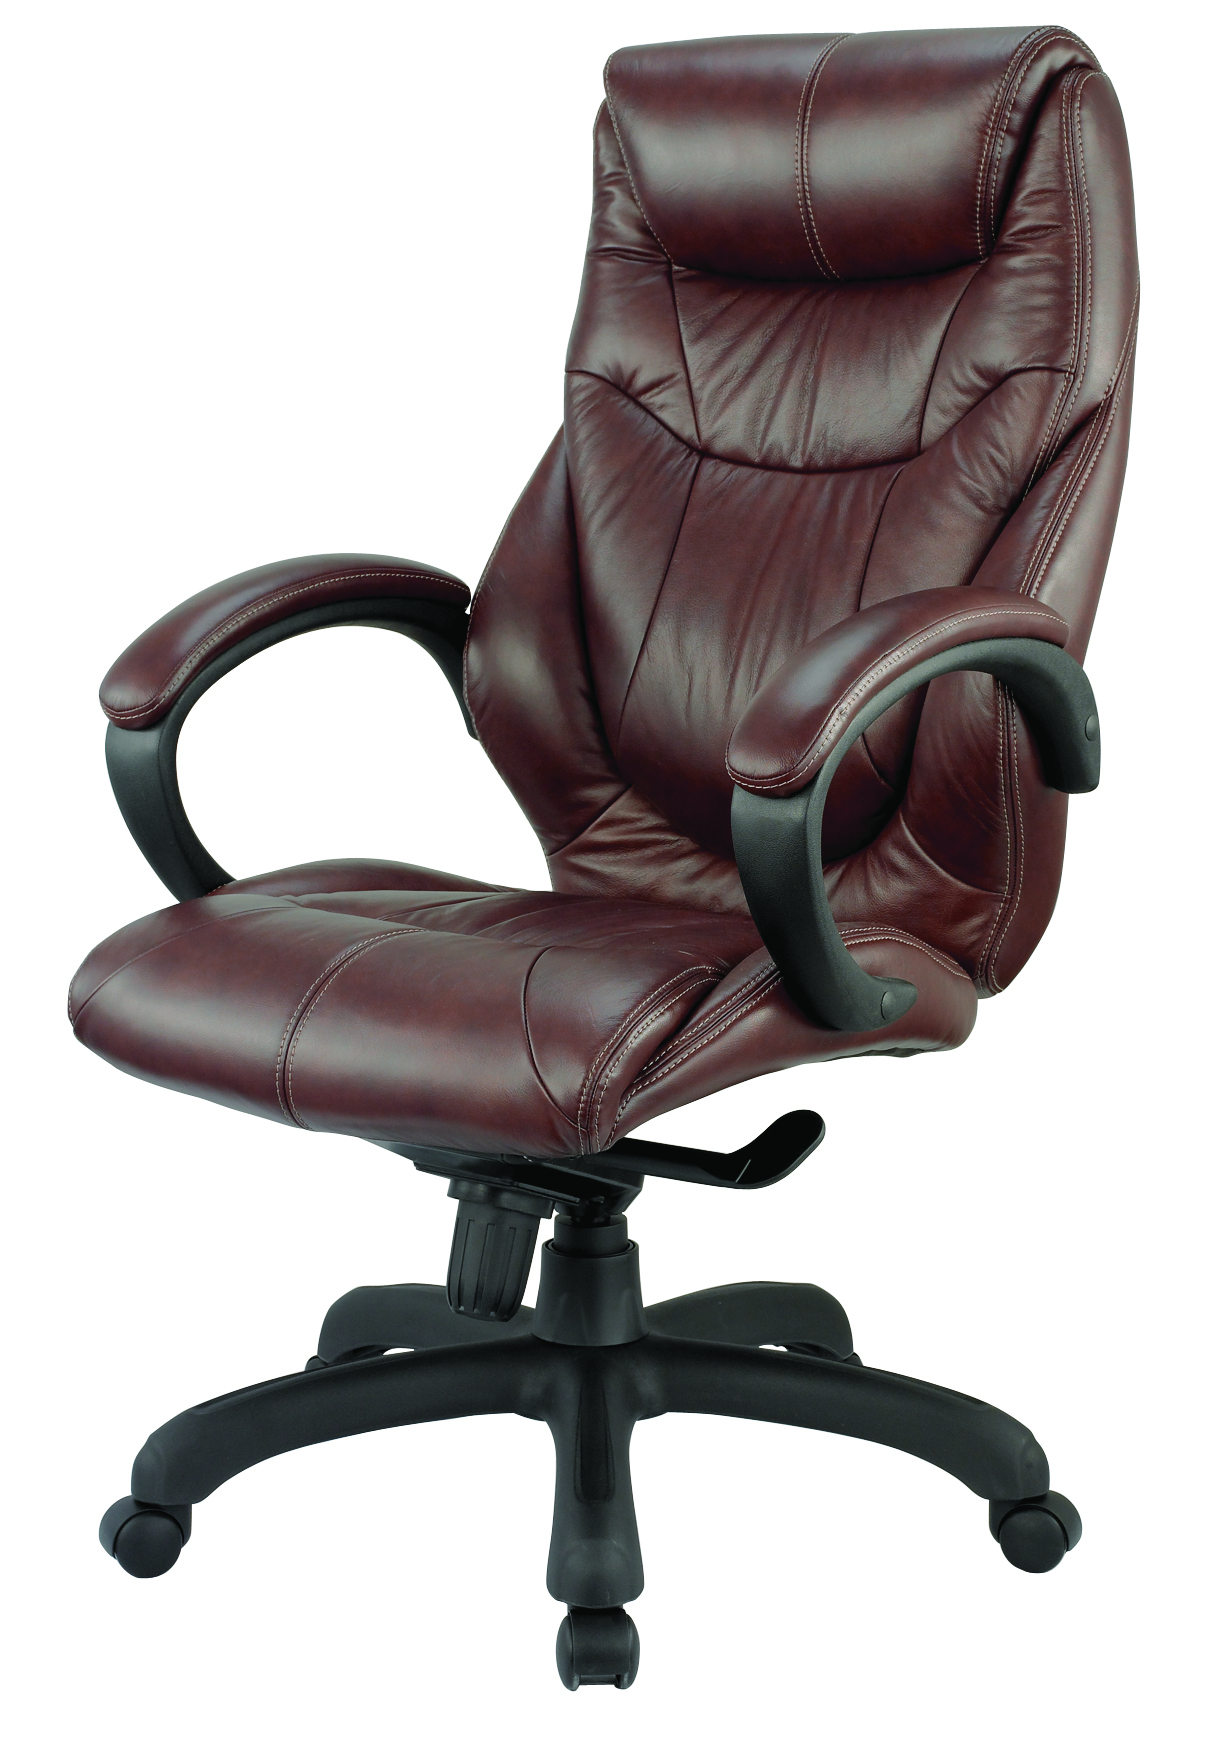 Leather Executive Chair Office Chairs Executive Office Chairs Leather